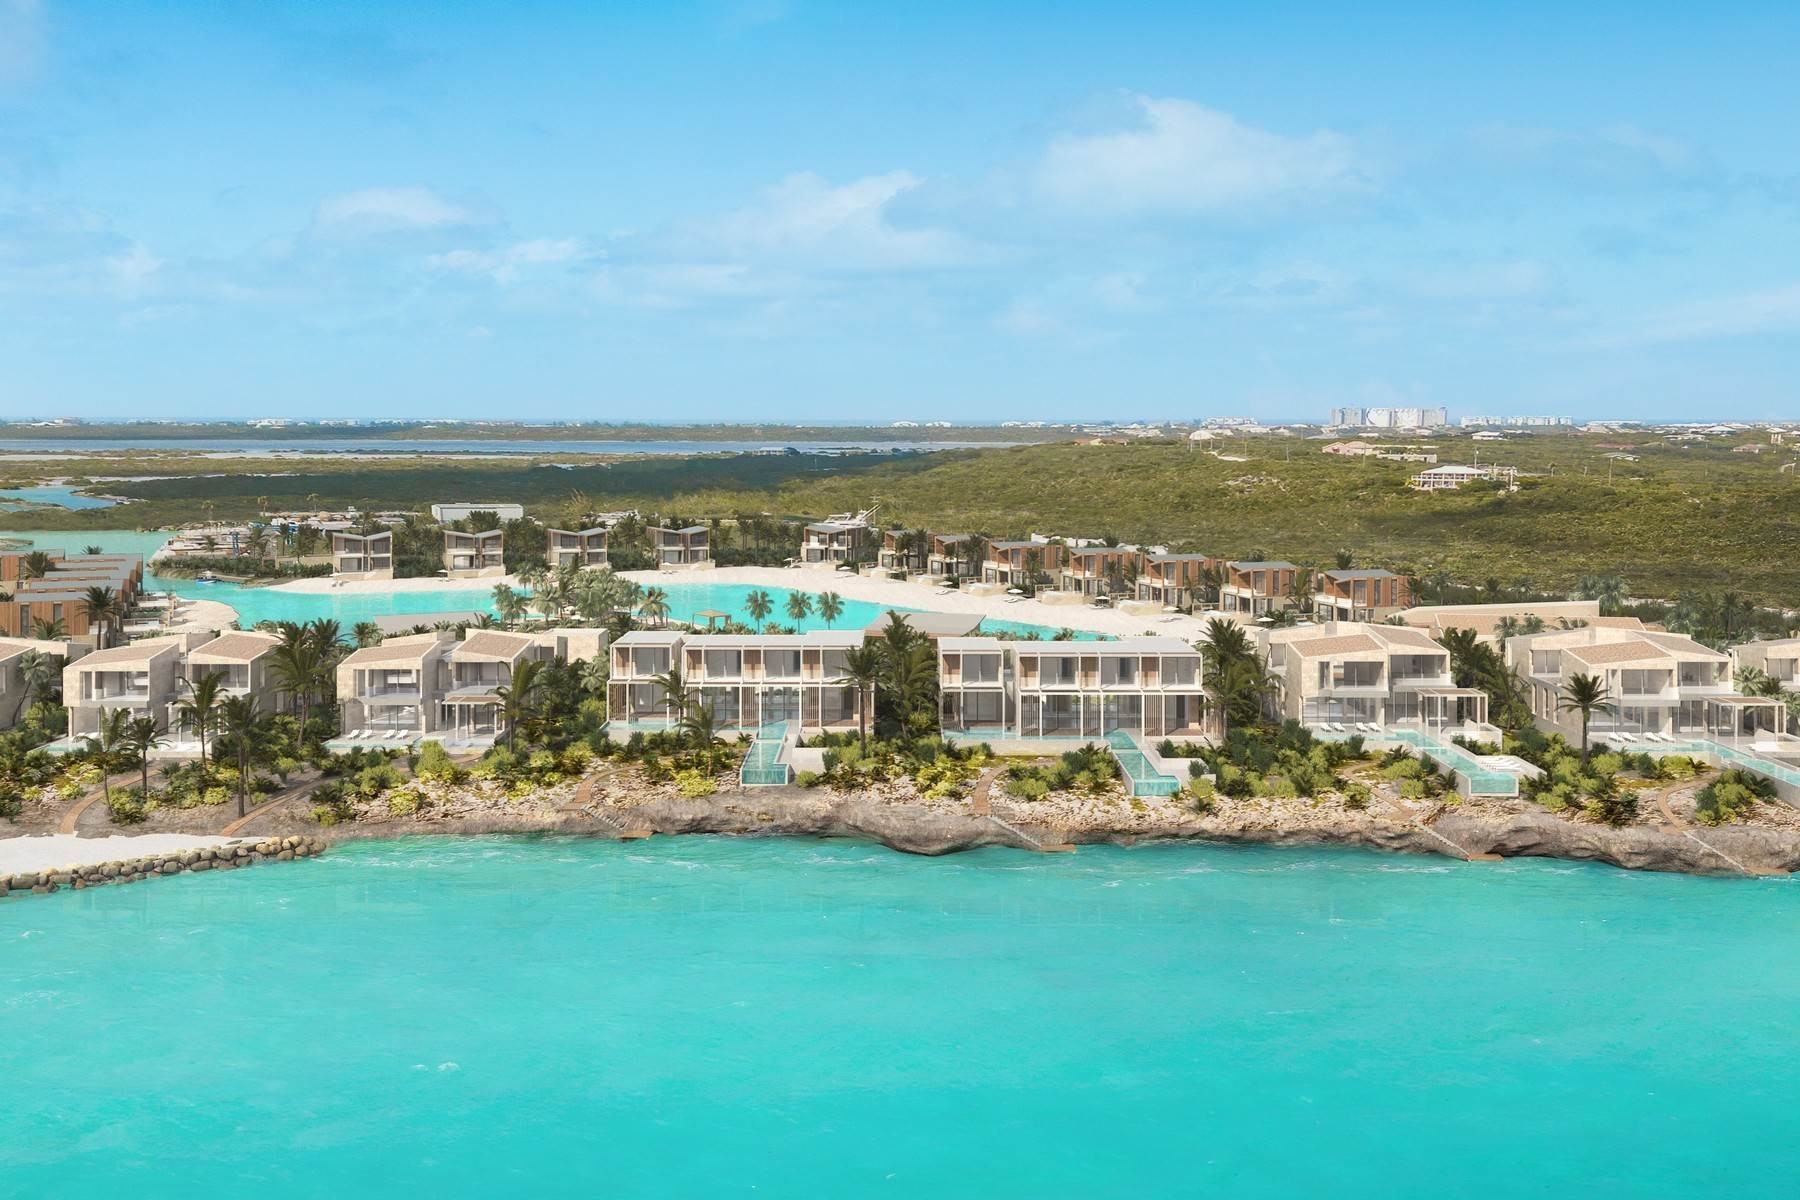 Single Family Homes for Sale at SOUTH BANK - THE OCEAN ESTATE I - BANKS VILLA 5 South Bank, Long Bay, Providenciales Turks And Caicos Islands